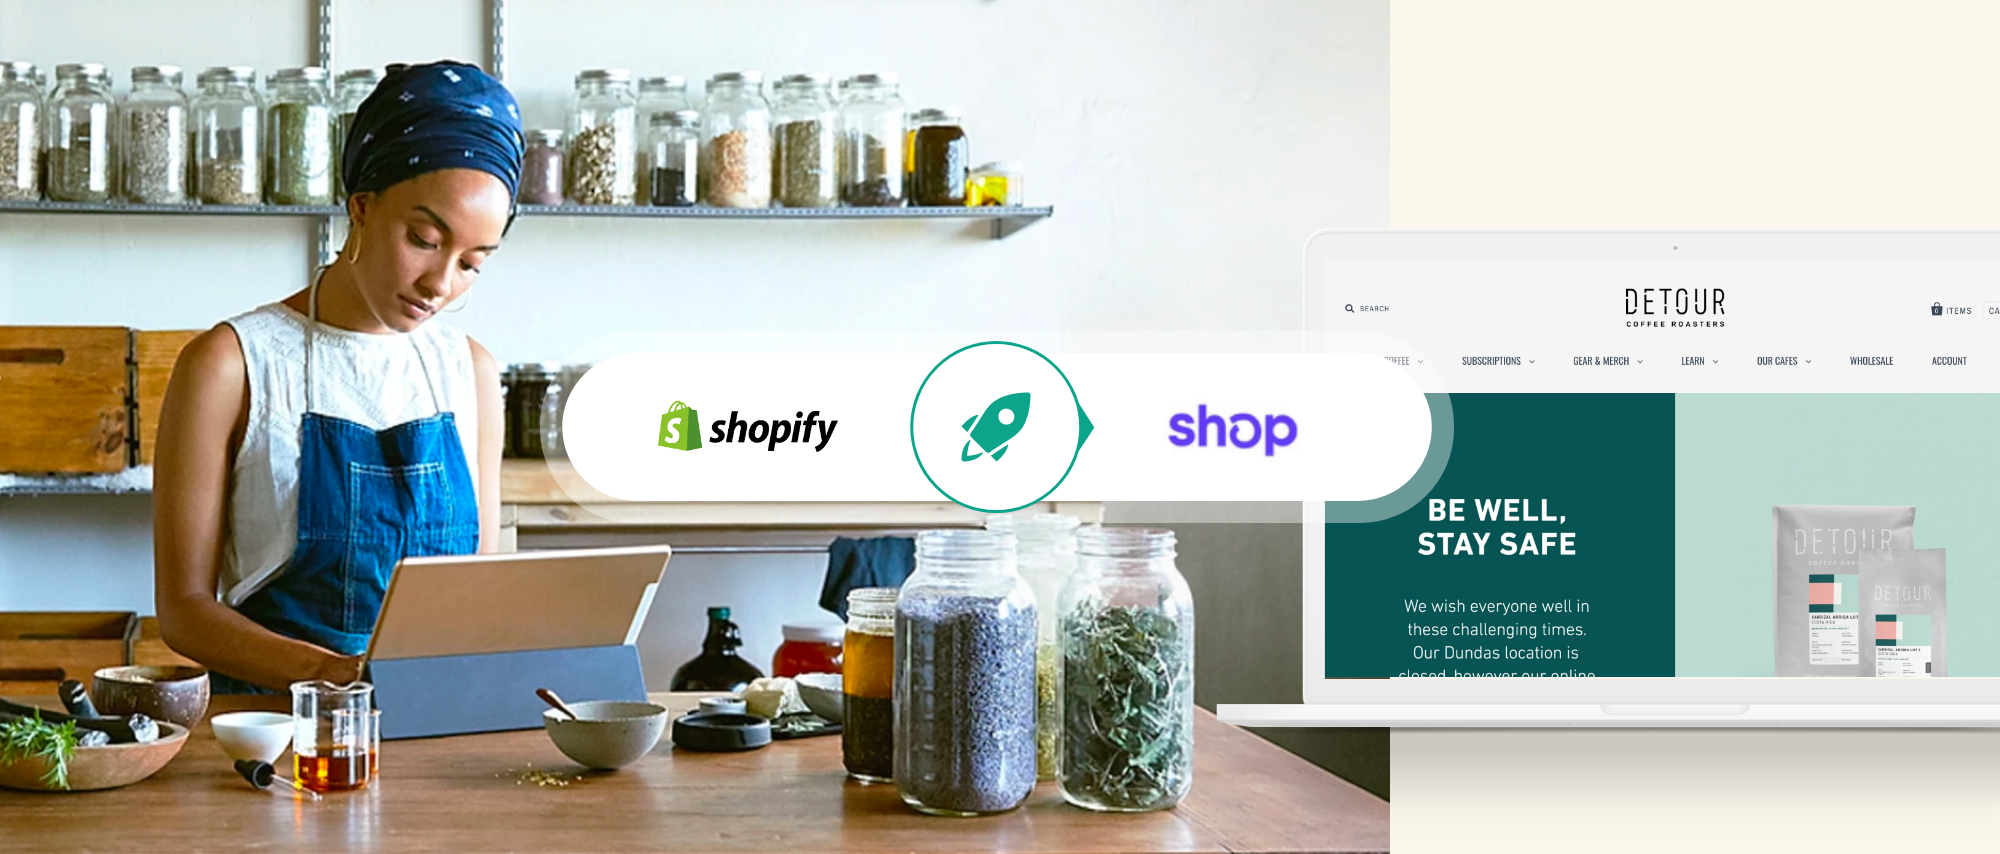 """Shopify's """"Shop"""": Helping Local Retailers In The New Normal"""